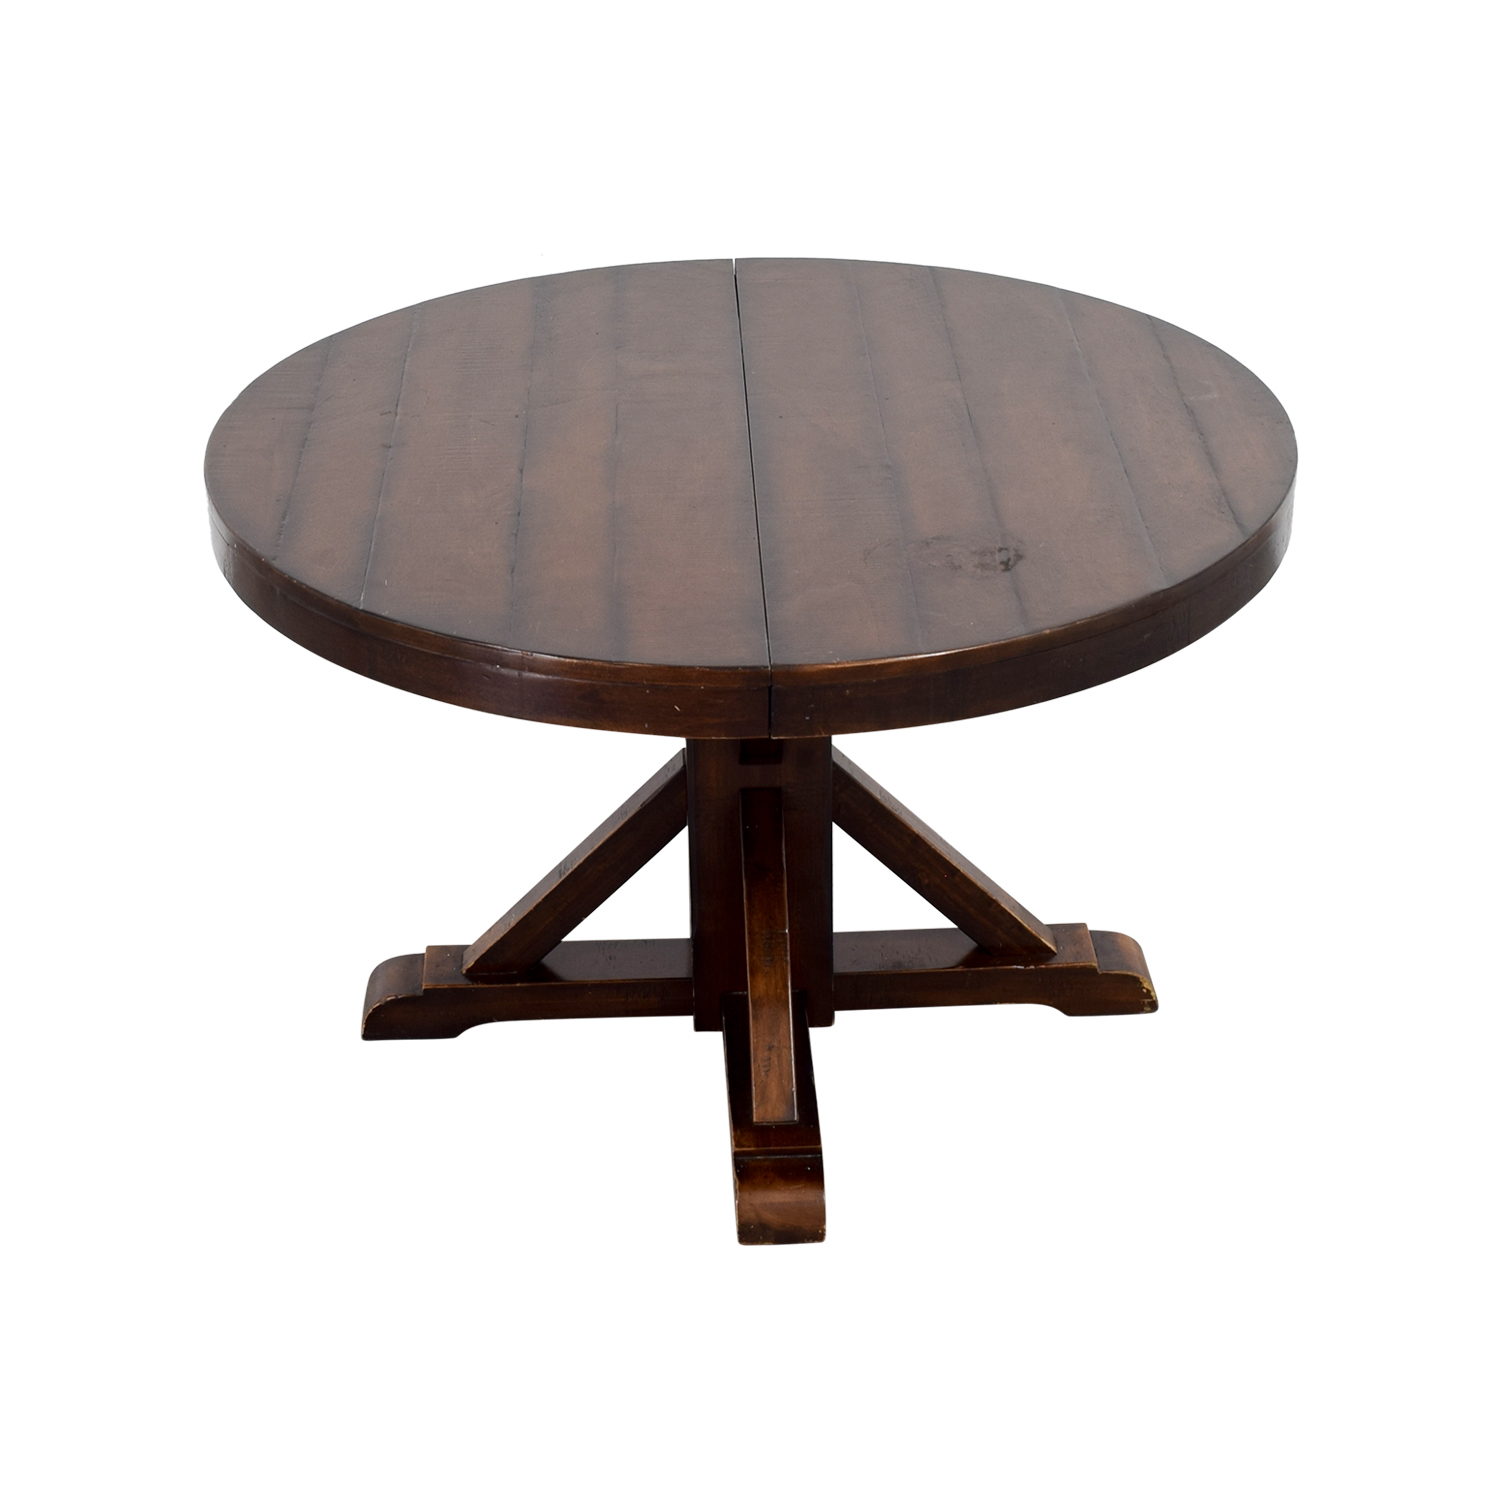 Pottery Barn Wood Table: Pottery Barn Pottery Barn Wood Extendable Dining